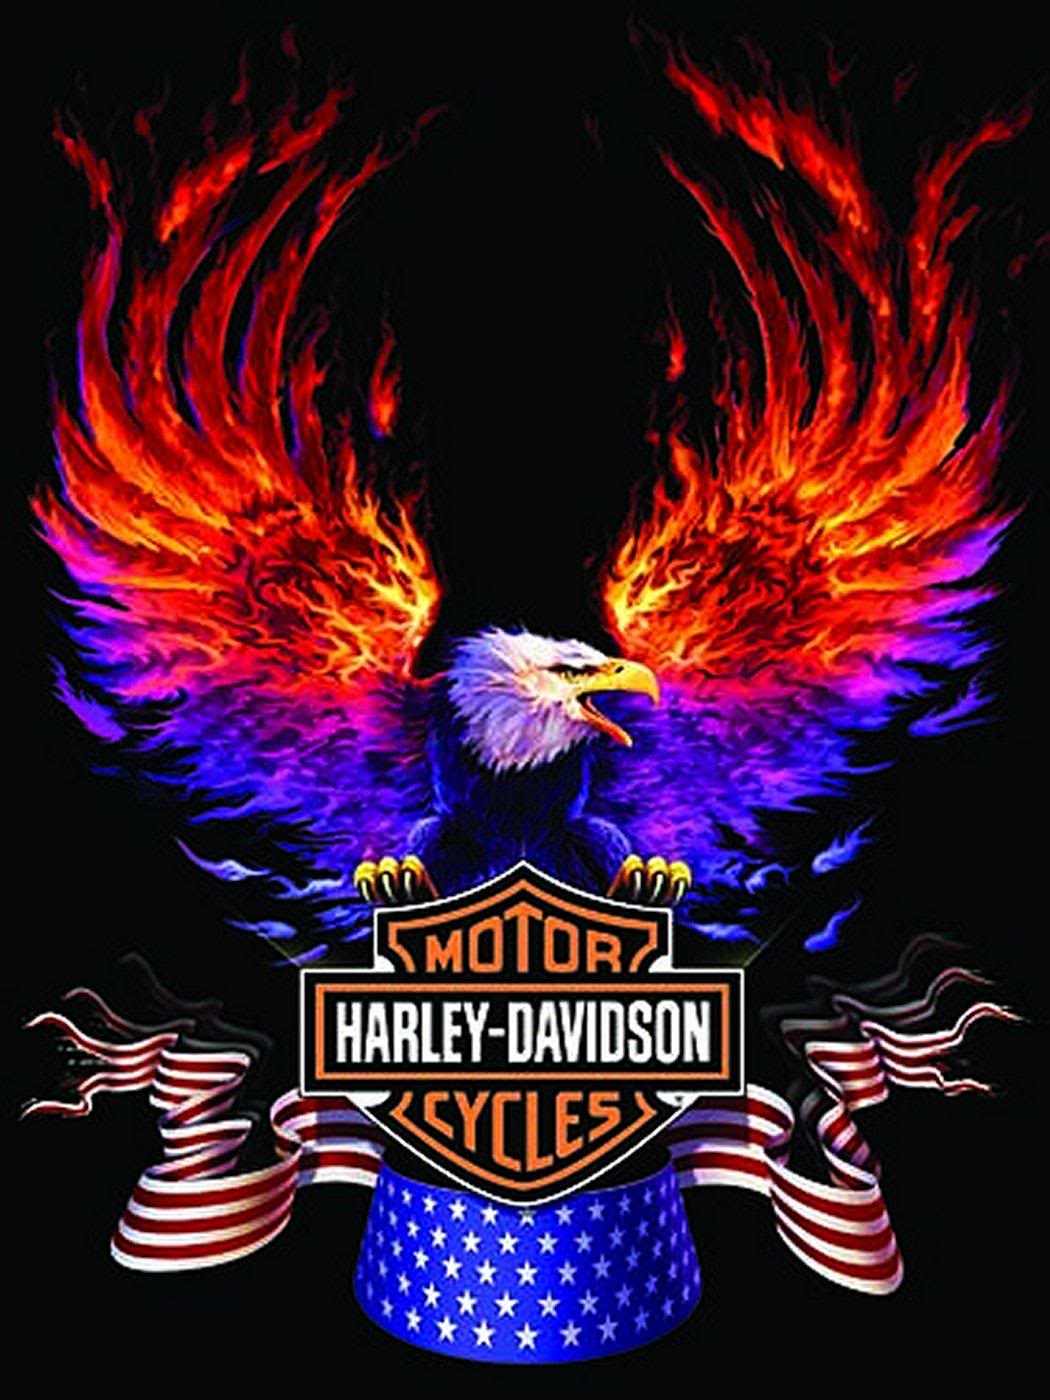 Harley Davidson Logo Wallpaper 6820 Hd Wallpapers in Logos   Imagesci 1050x1400